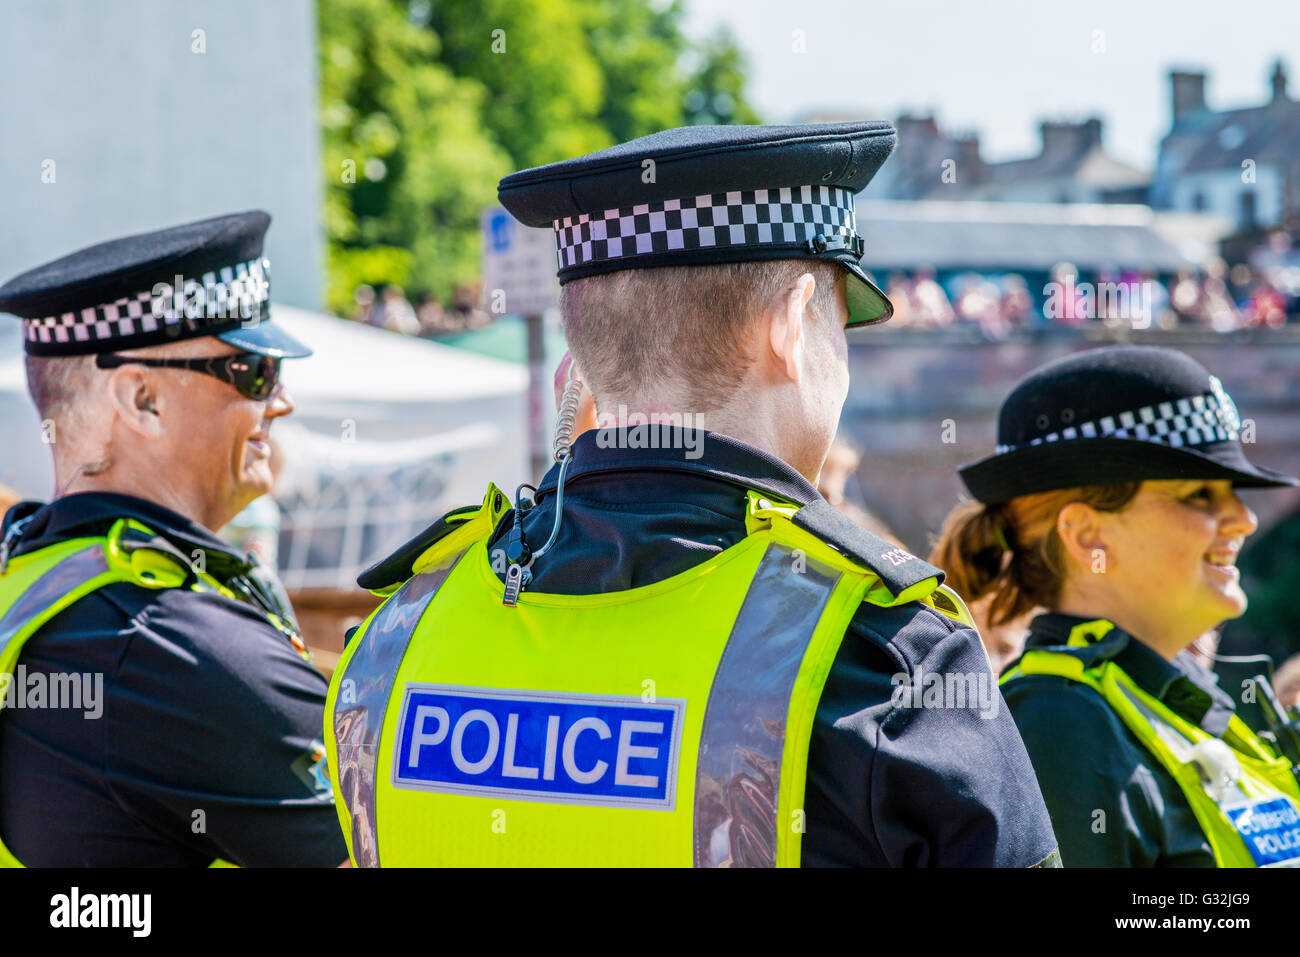 Police Officers on duty at Appleby Horse Fair, in Appleby-in-Westmorland, Cumbria, UK - Stock Image